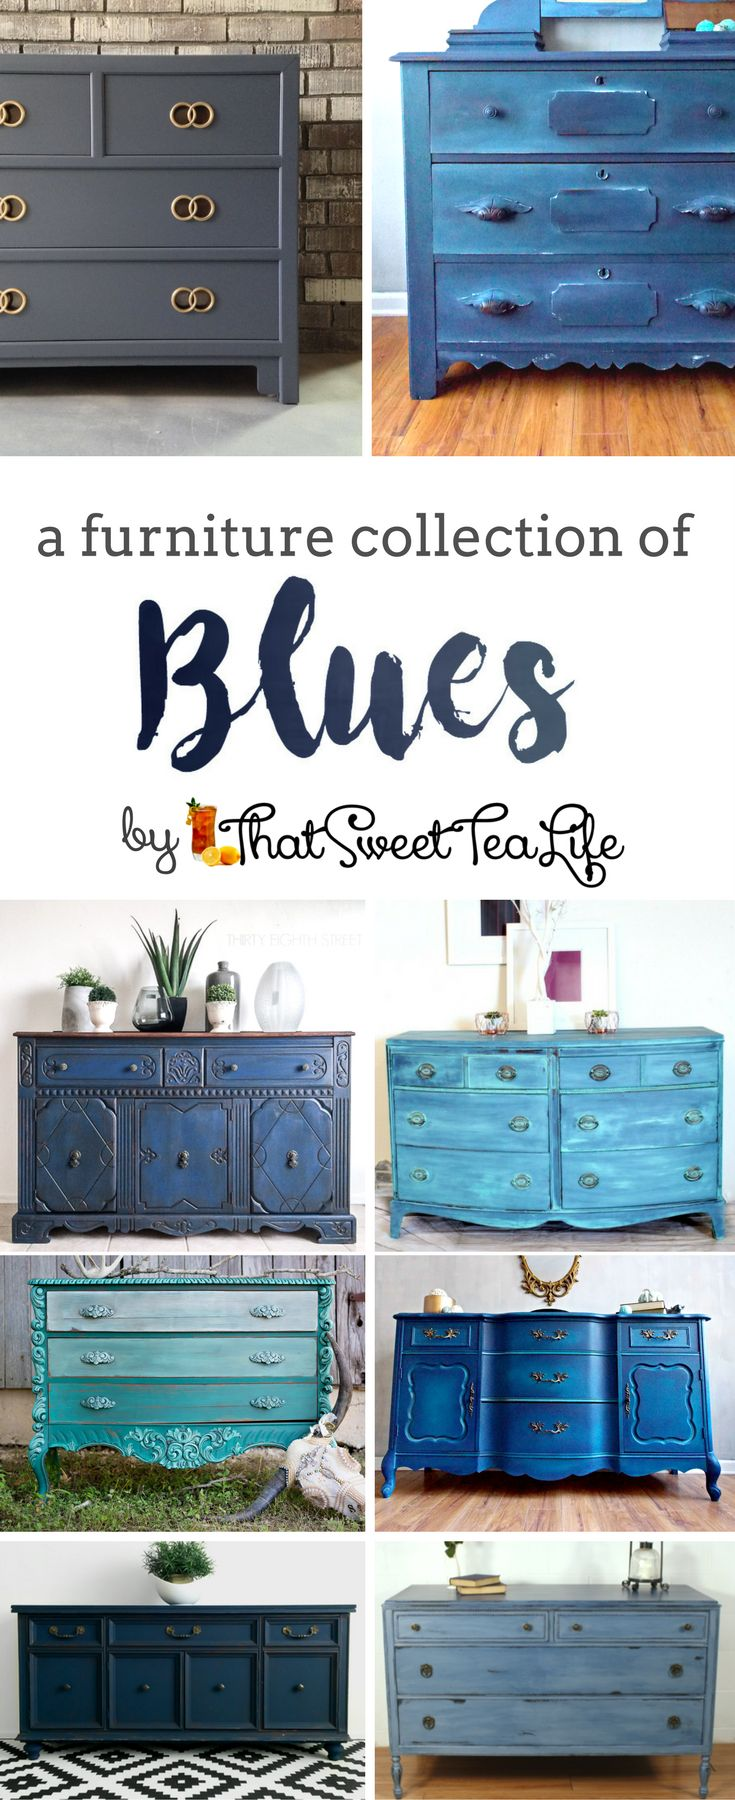 A Furniture Collection of Blues by That Sweet Tea Life | Blue Painted Furniture Ideas | Teal Furniture | Navy Furniture | Painted Dressers | Hale Navy | Furniture Inspiration | Blue Furniture Makeovers